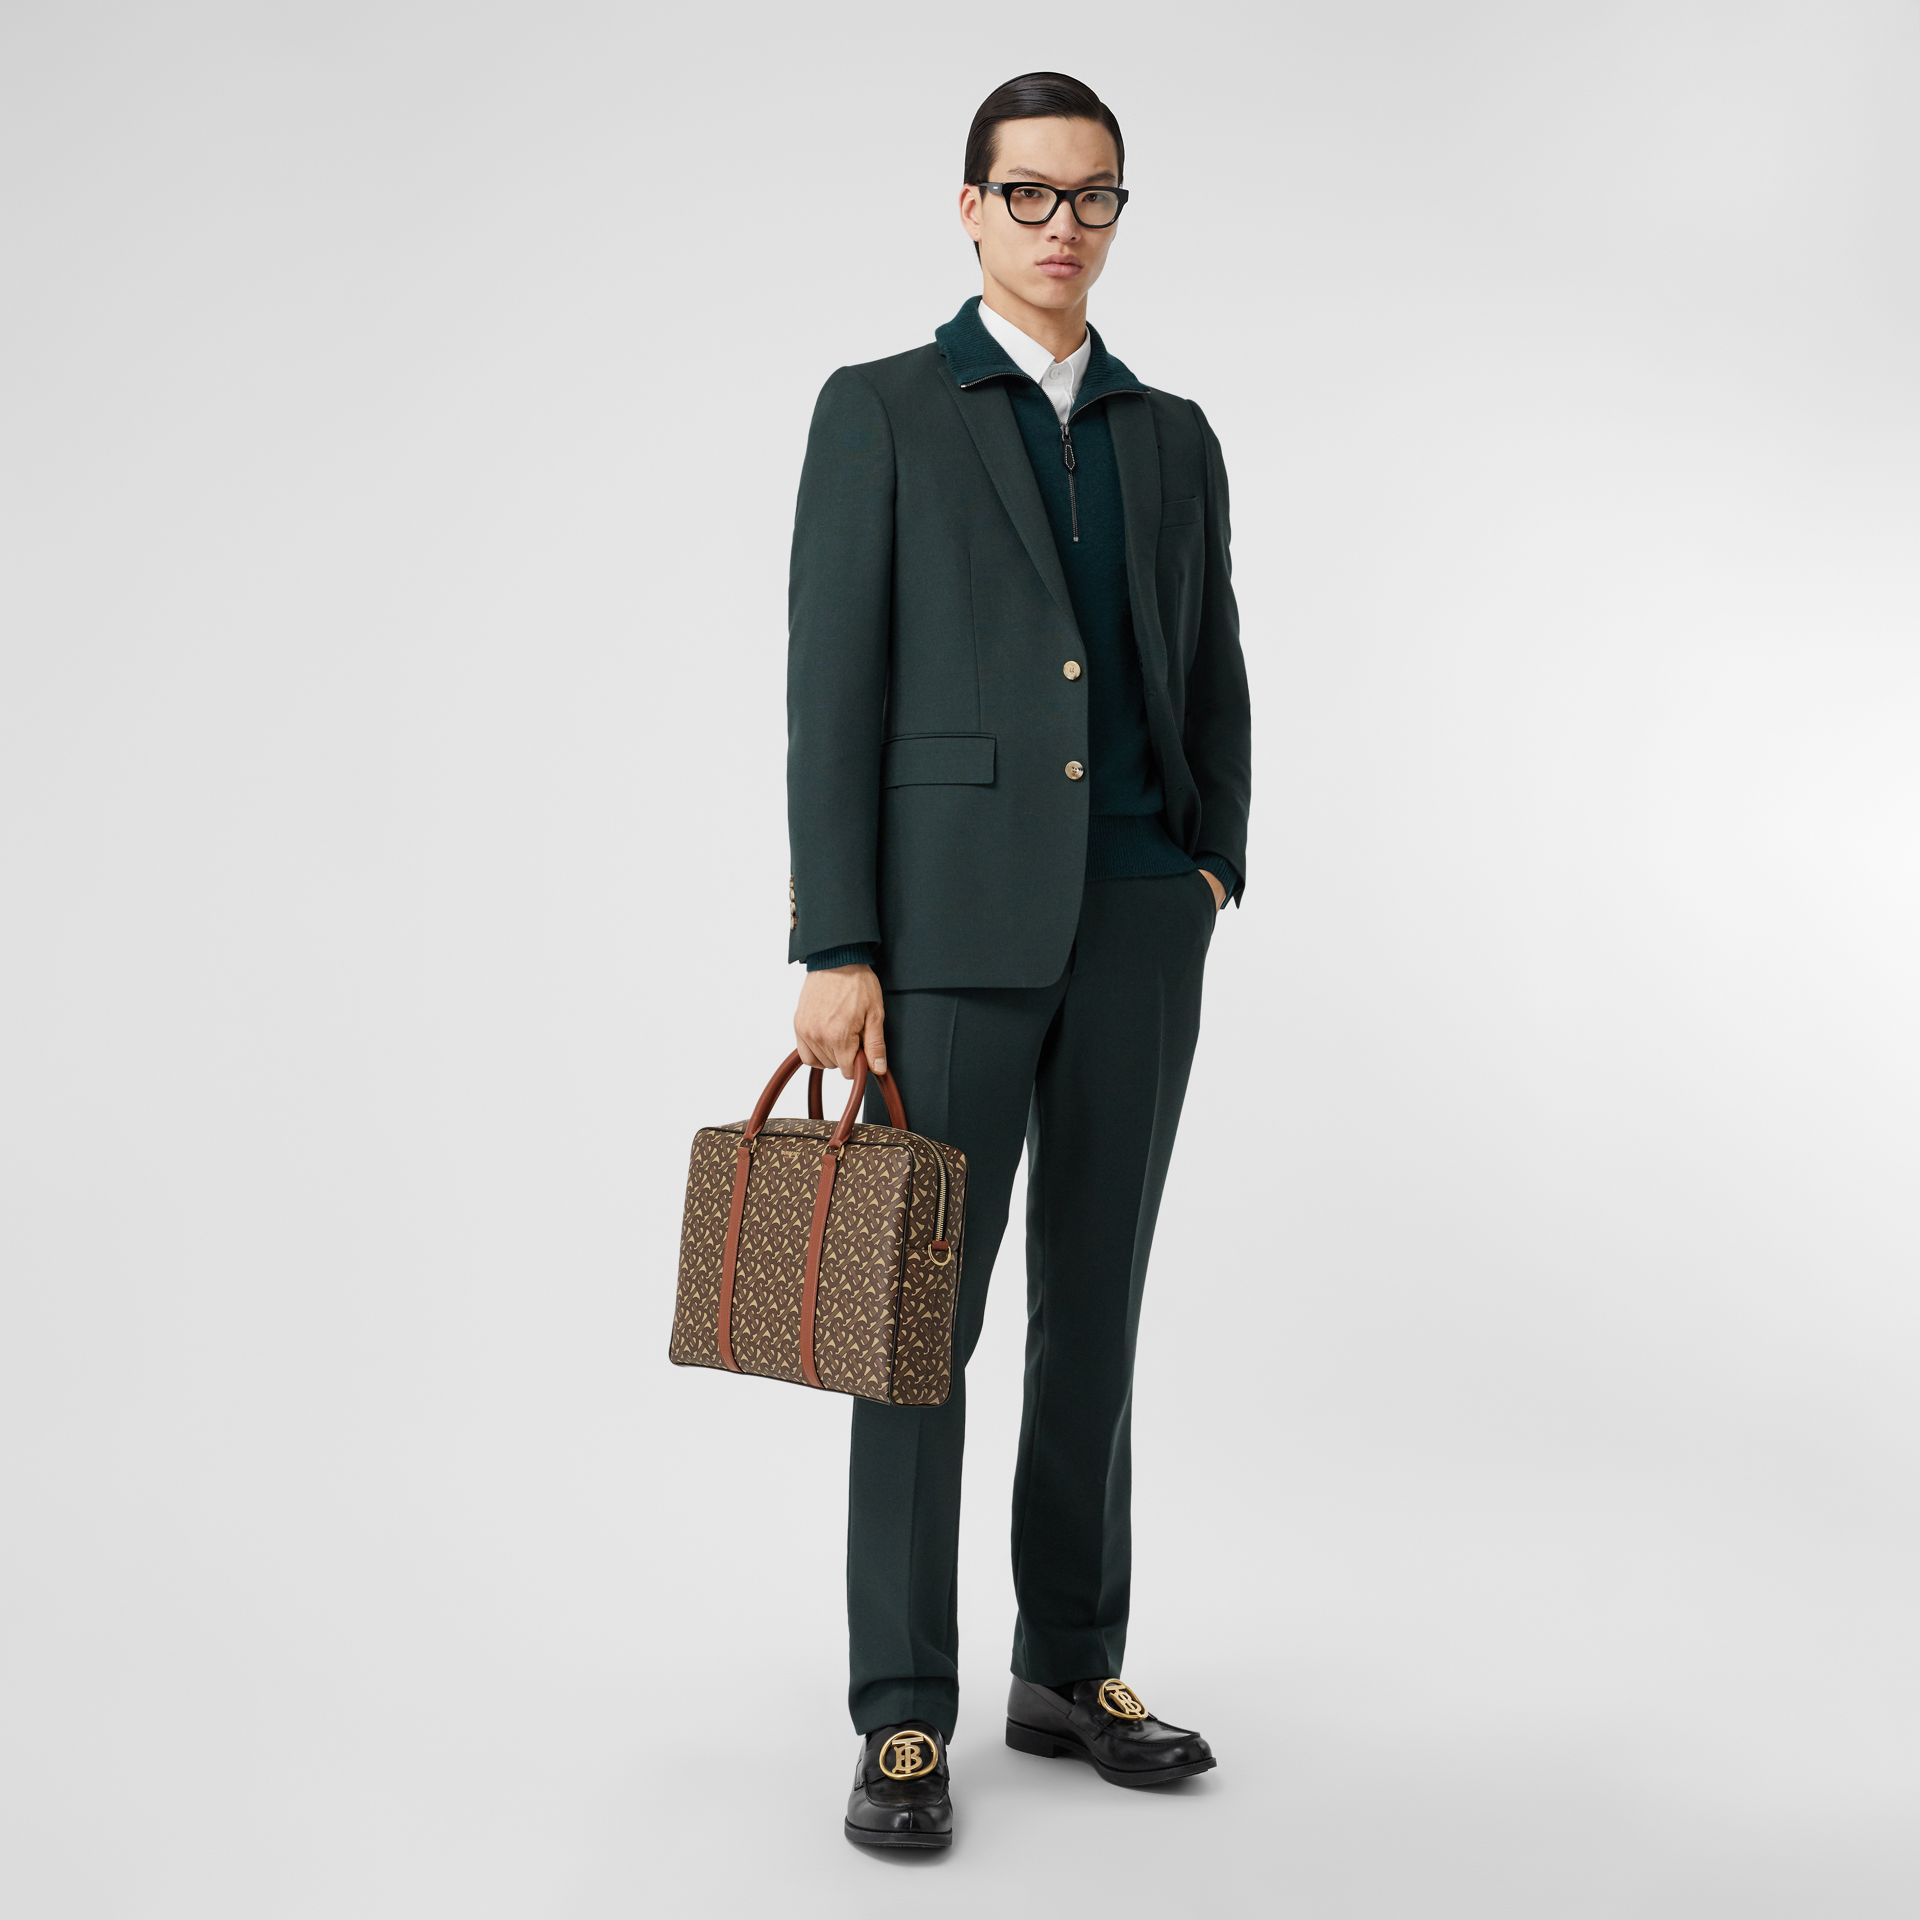 Monogram Print E-canvas and Leather Briefcase in Bridle Brown - Men | Burberry - gallery image 5